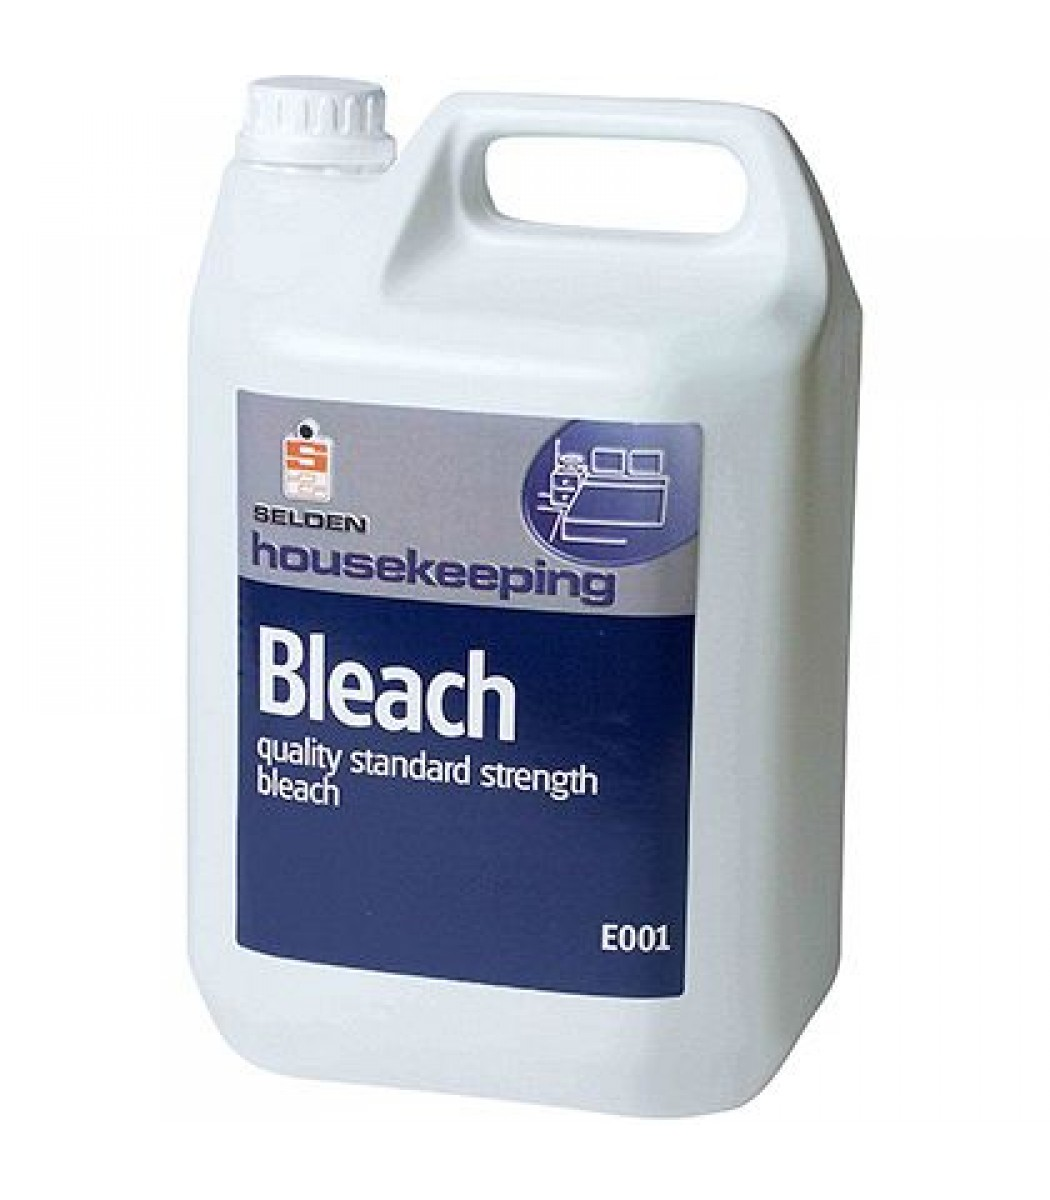 Bleach Standard Strength (E001) Image